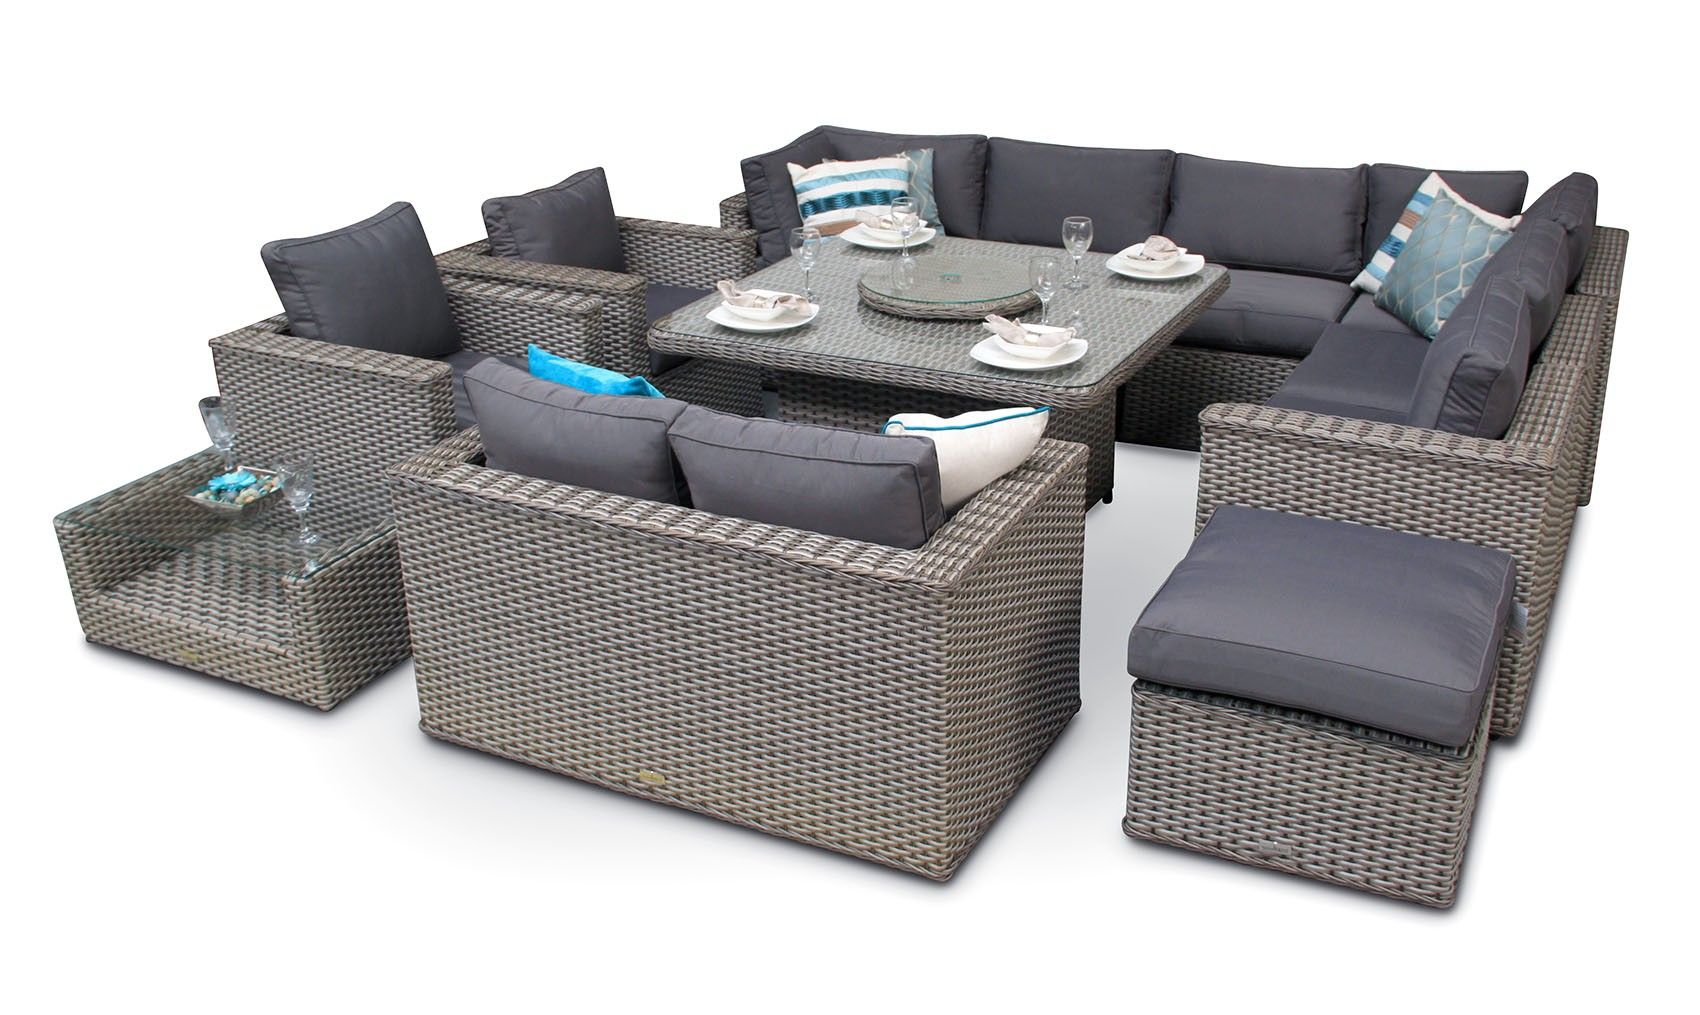 Large Modular Lounge Bahia Modular Rattan Sofa Square Table Dining Set 11pc